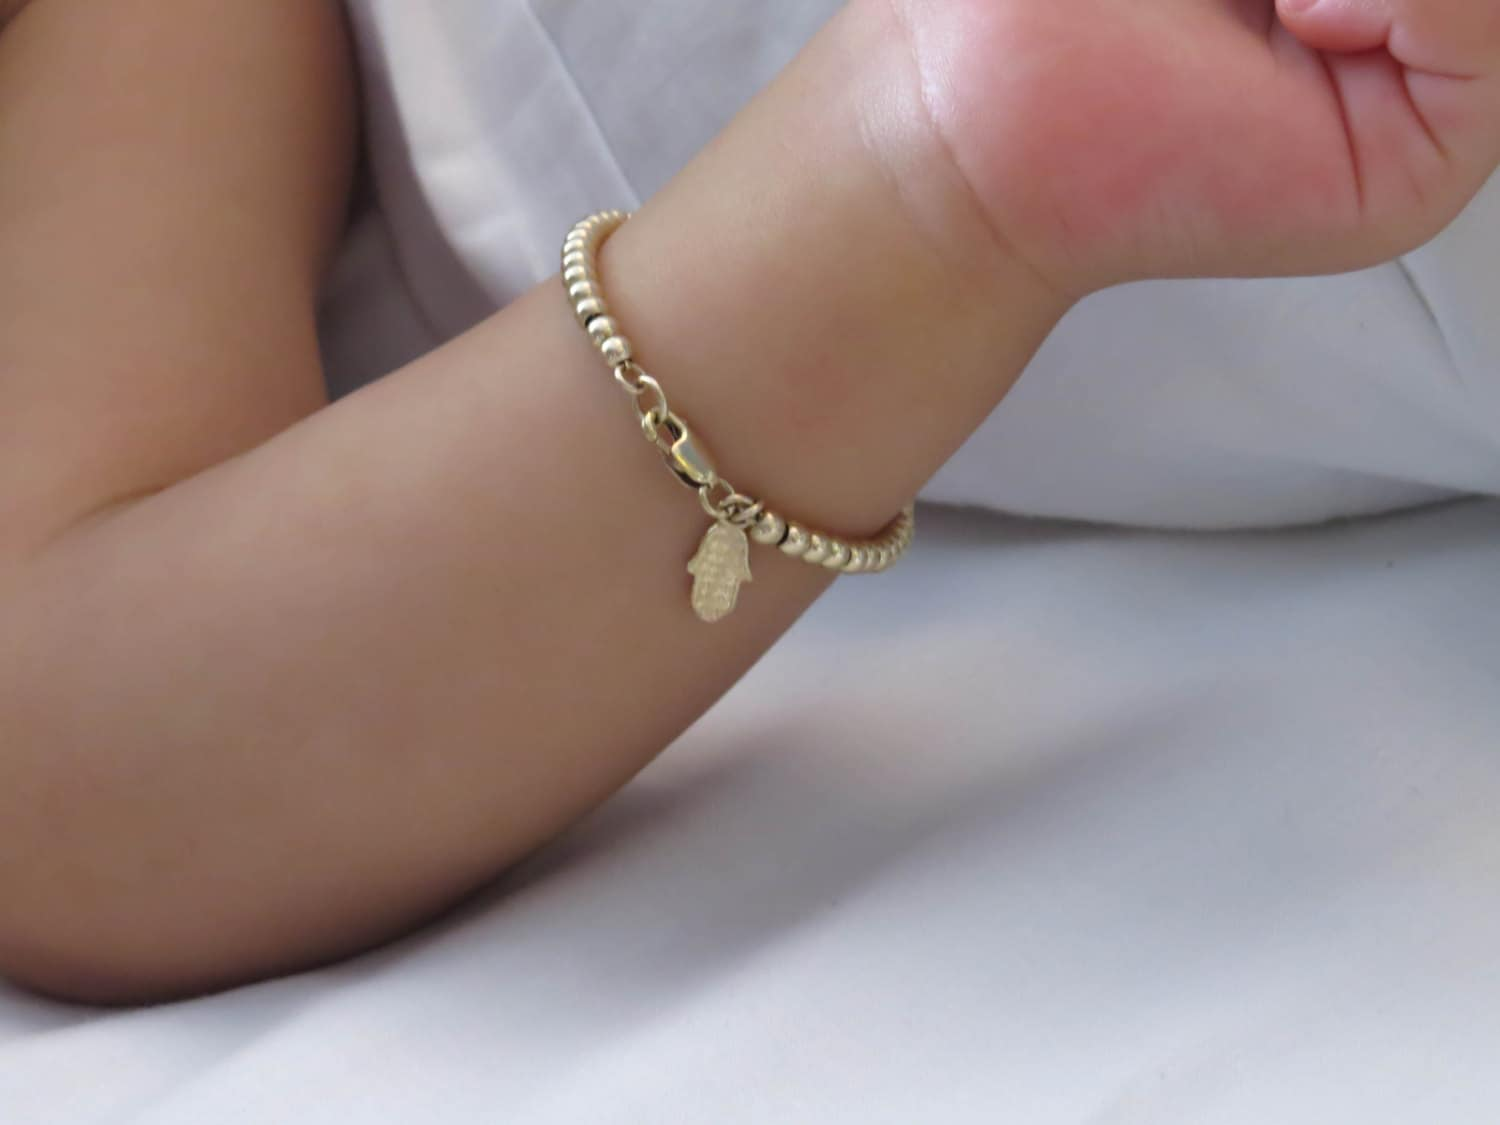 gold bangle filled accessories gift bracelet bangles small in children s item openable diameter jewelry baby dia twisted wrist yellow from infant